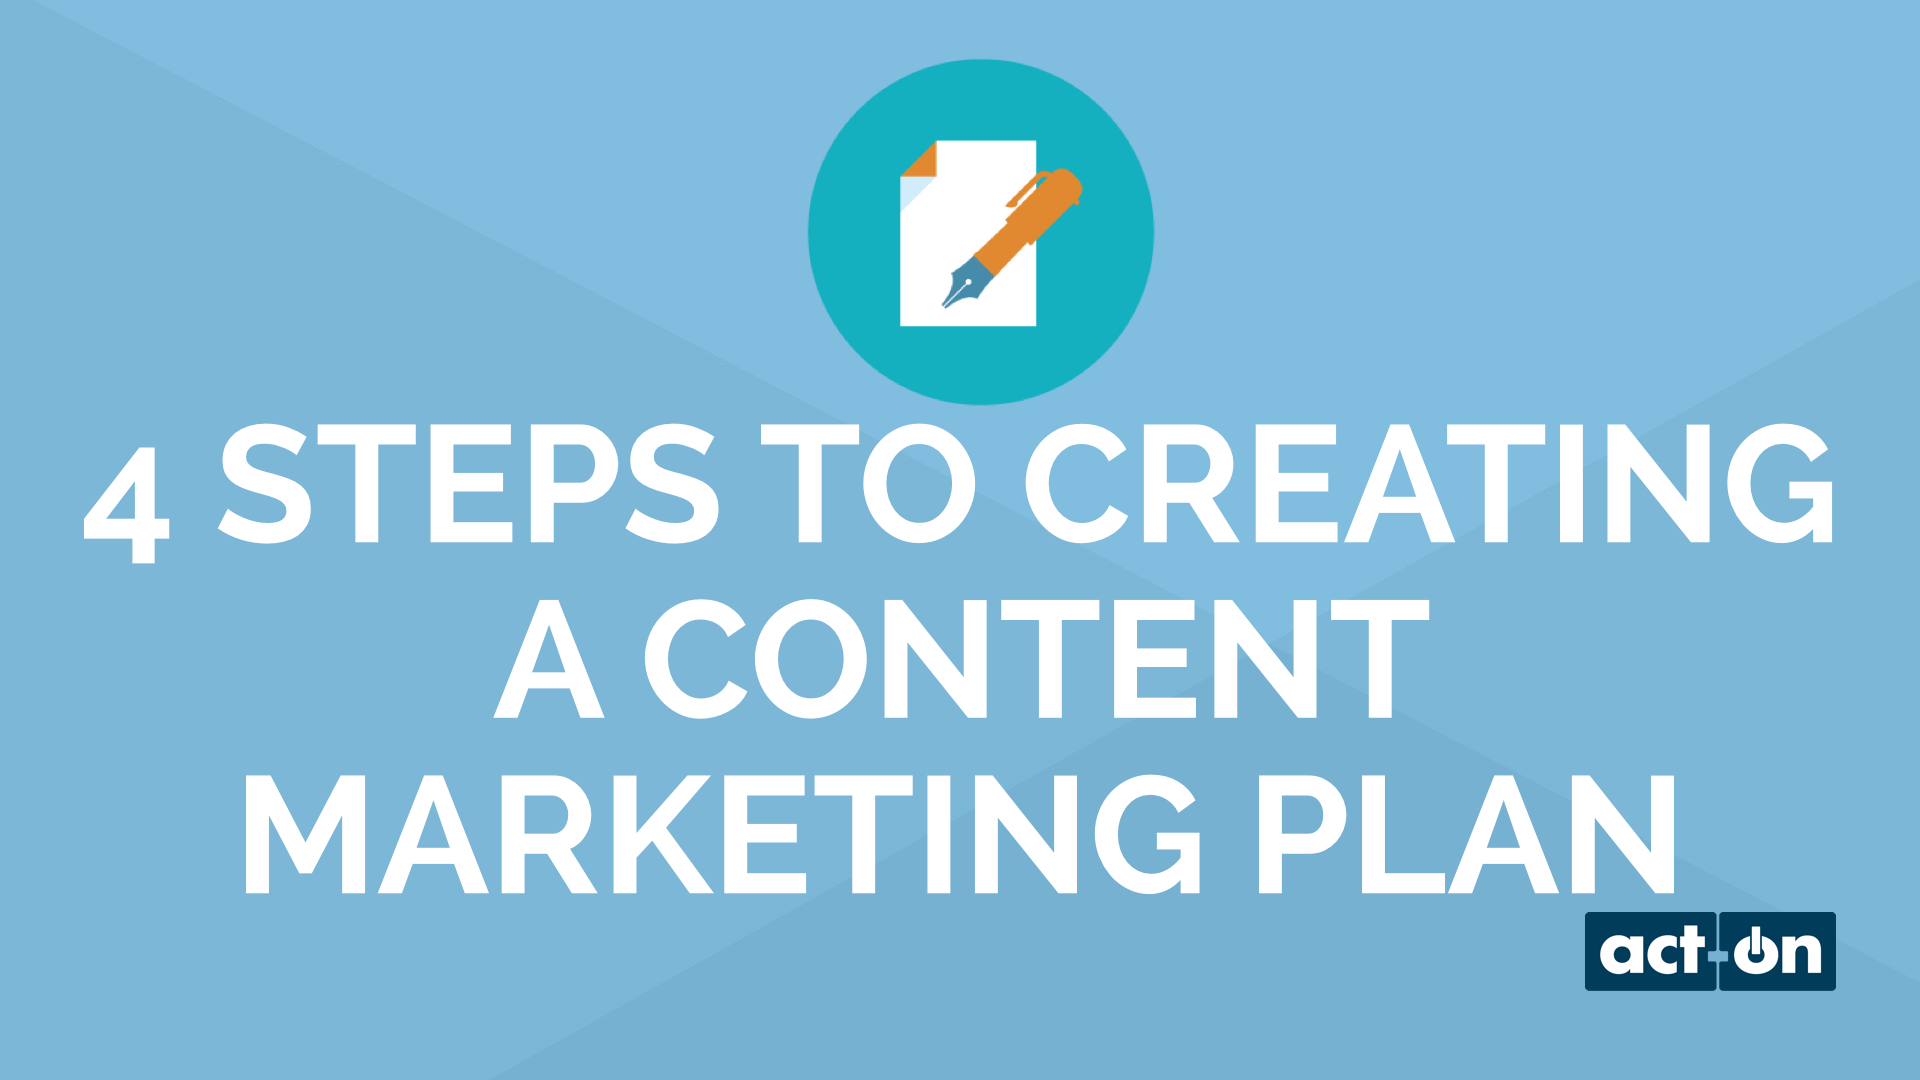 4 Steps to Creating a Content Marketing Plan in 15 Minutes